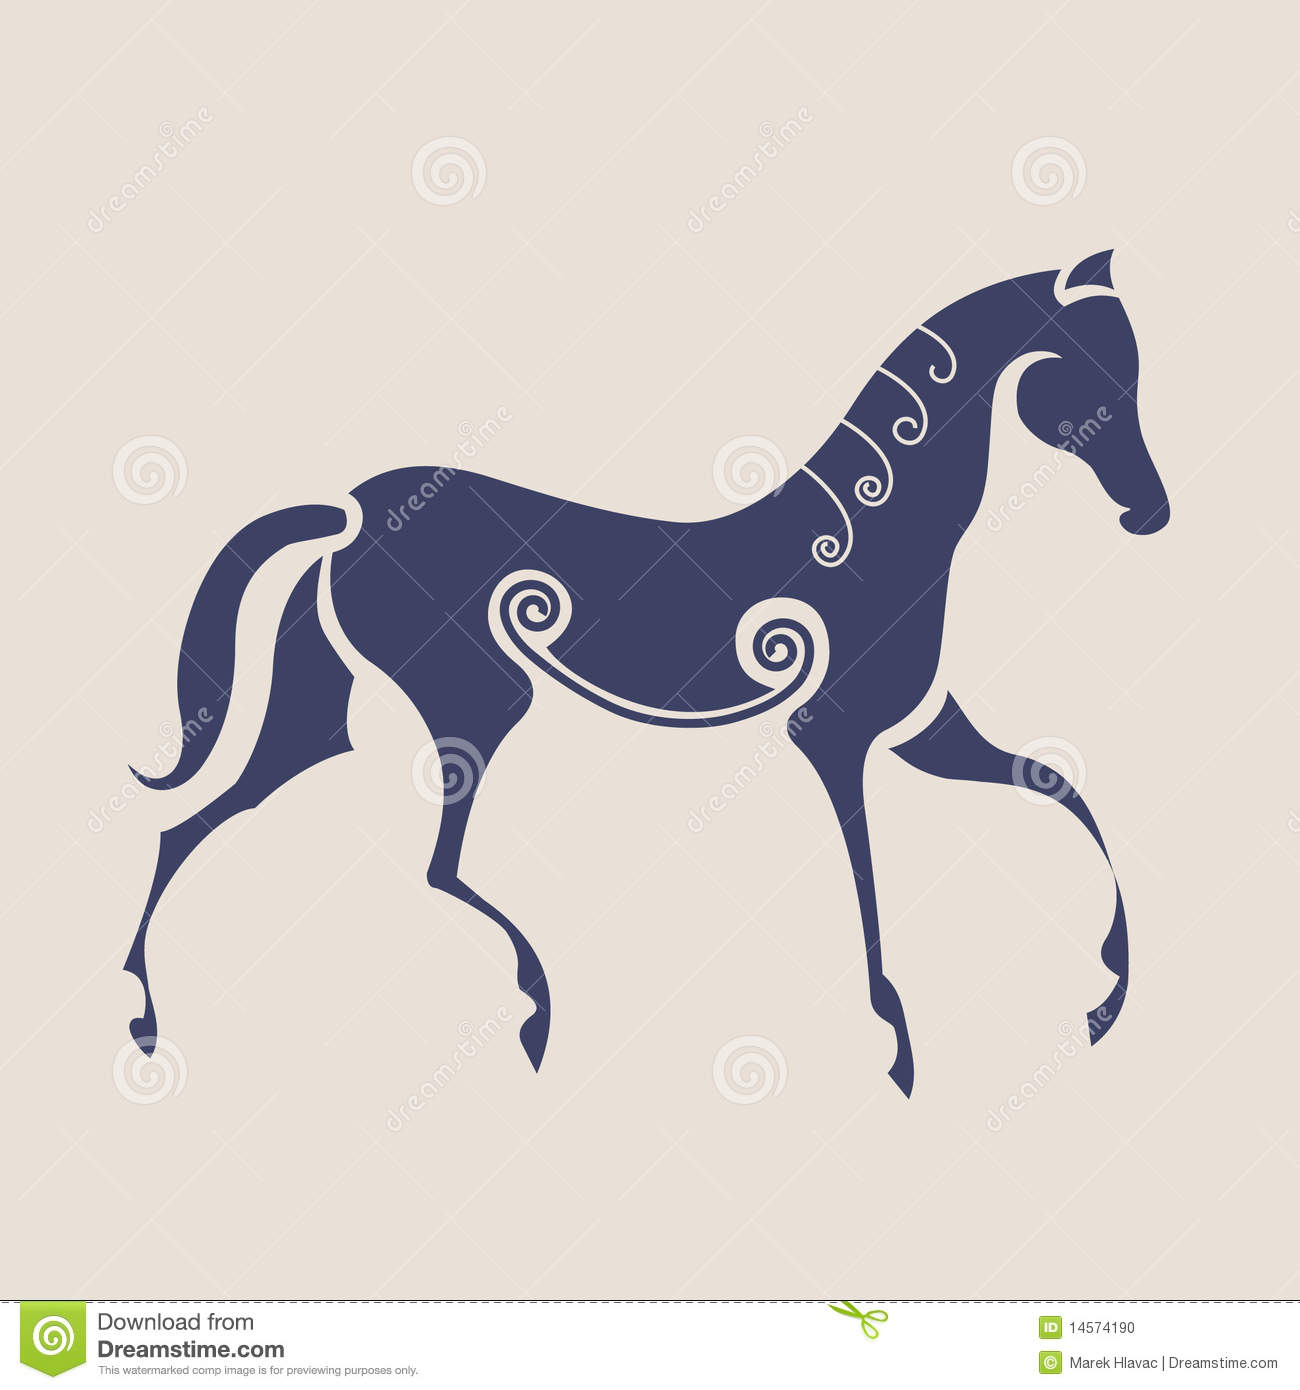 Celtic symbol of horse